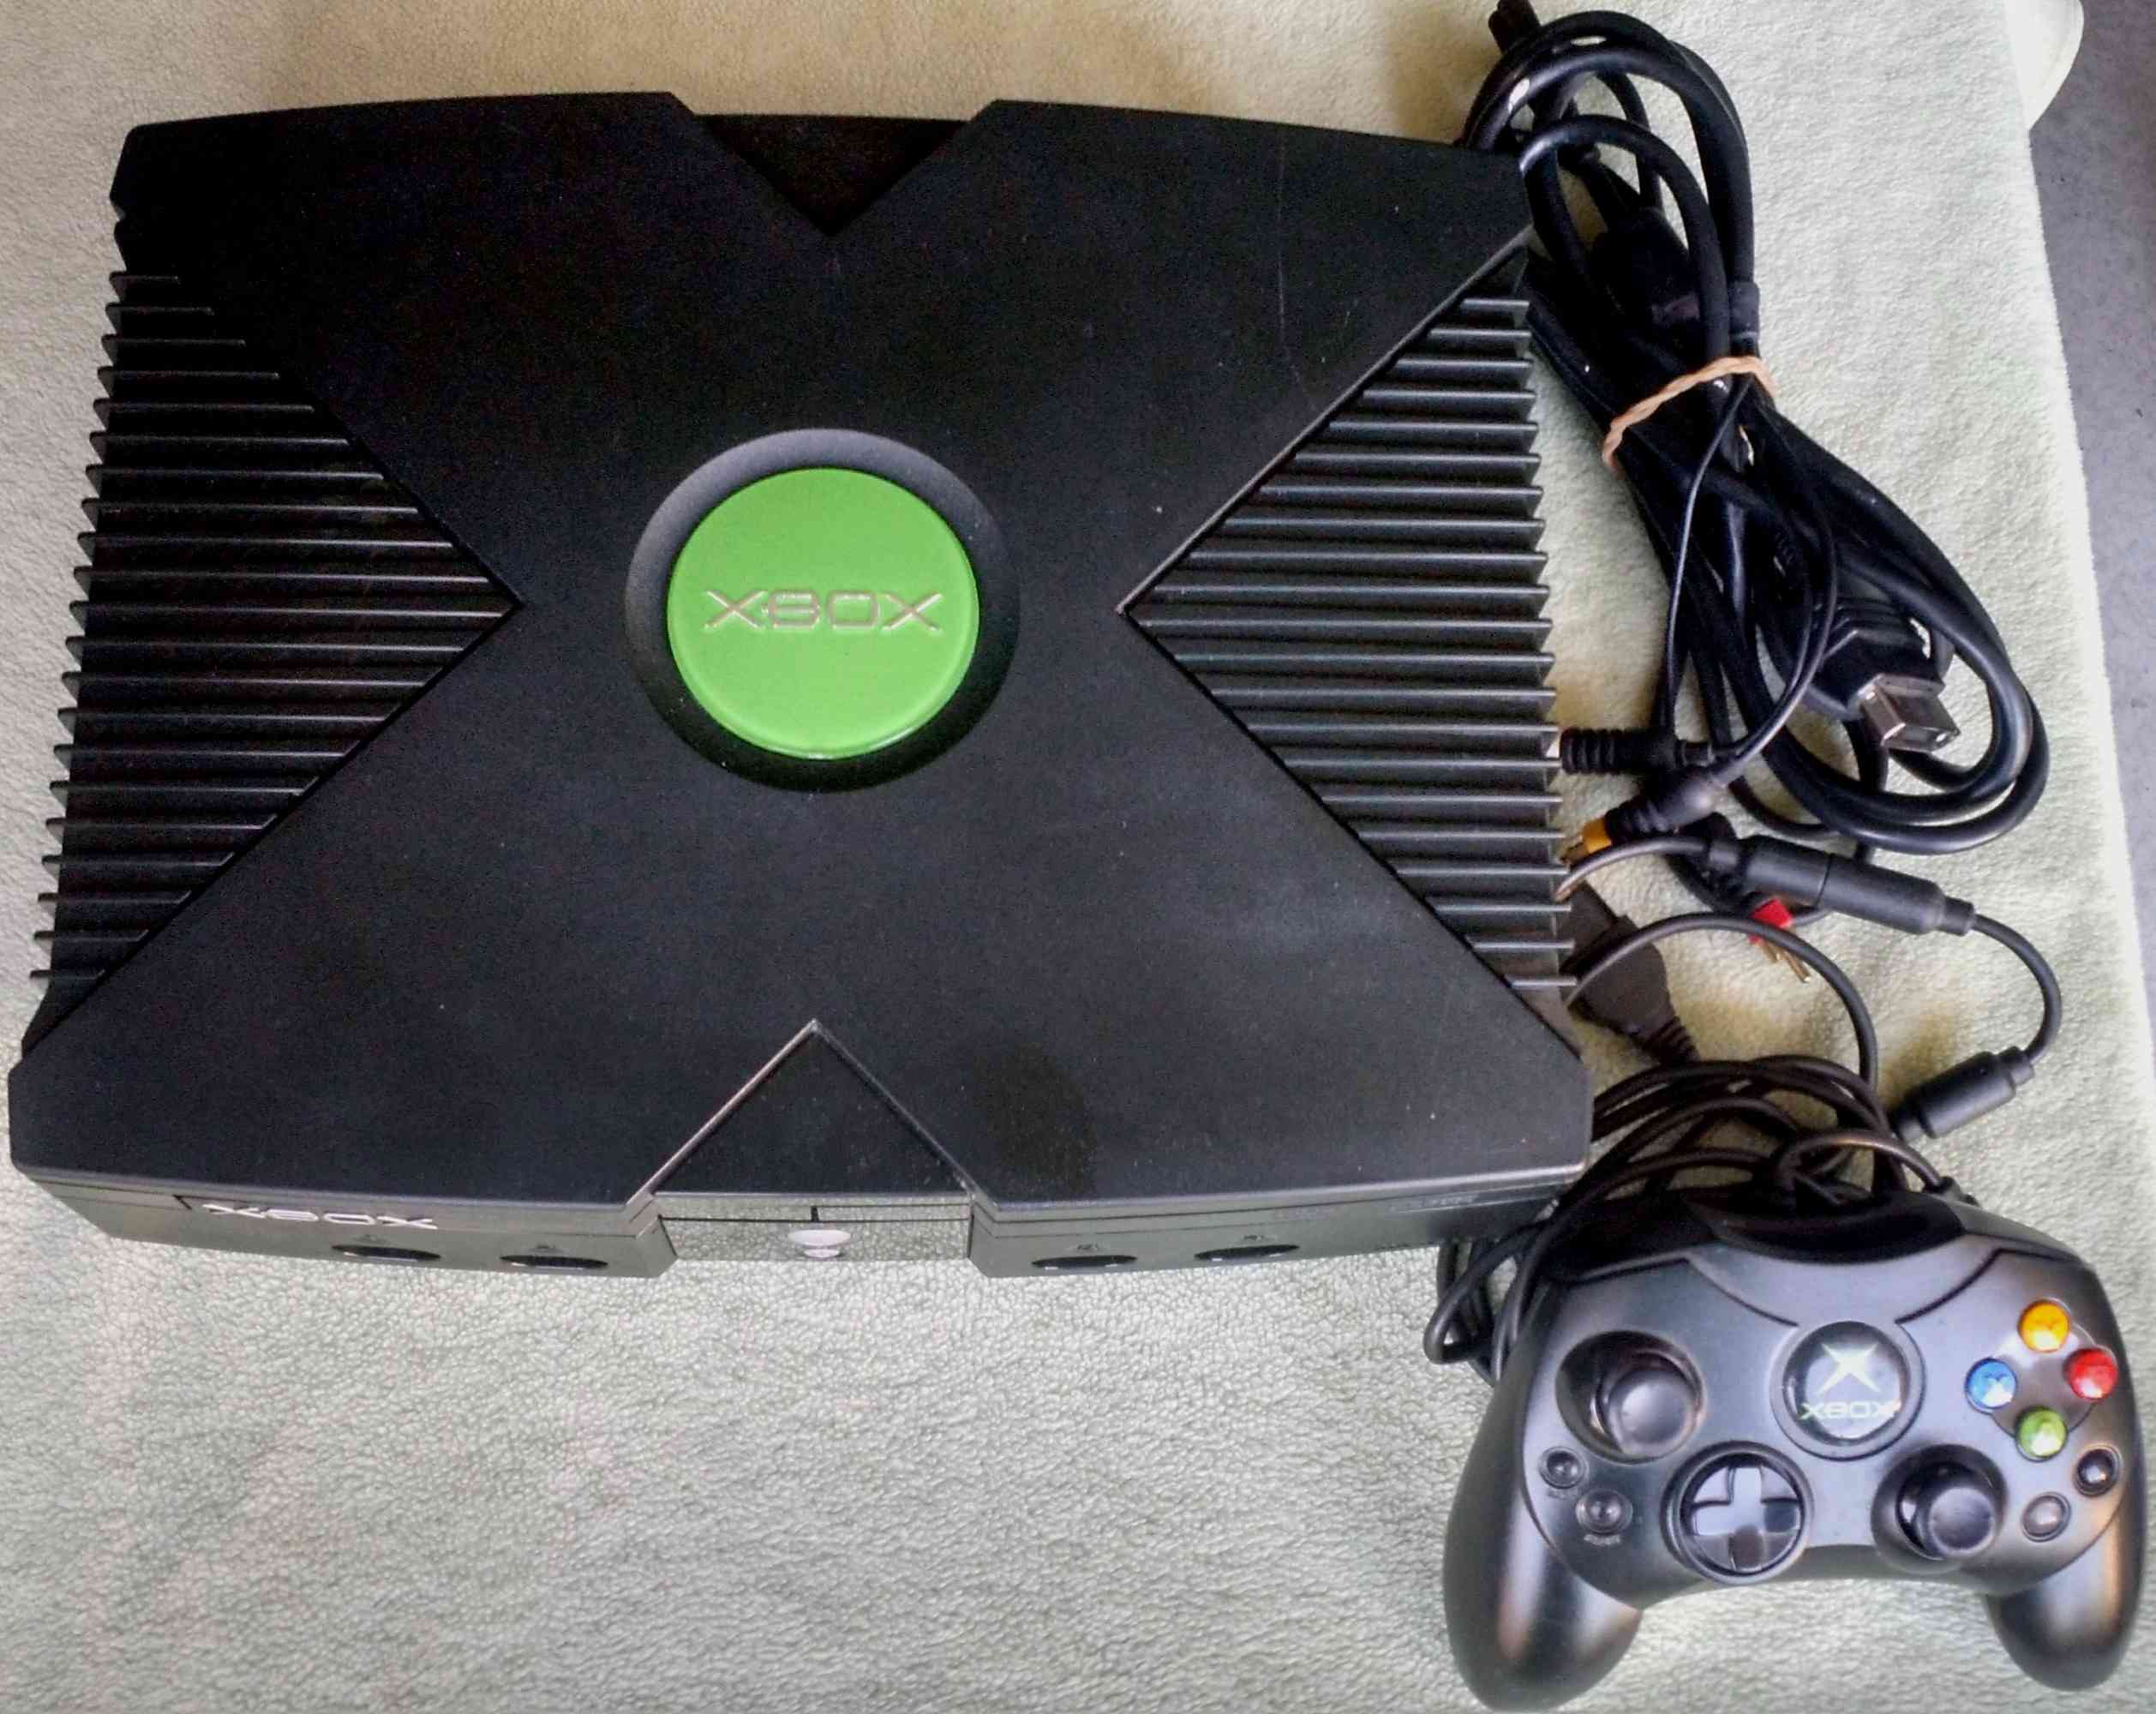 [Vends] Xbox Mod coinOPS 8  Img_2105